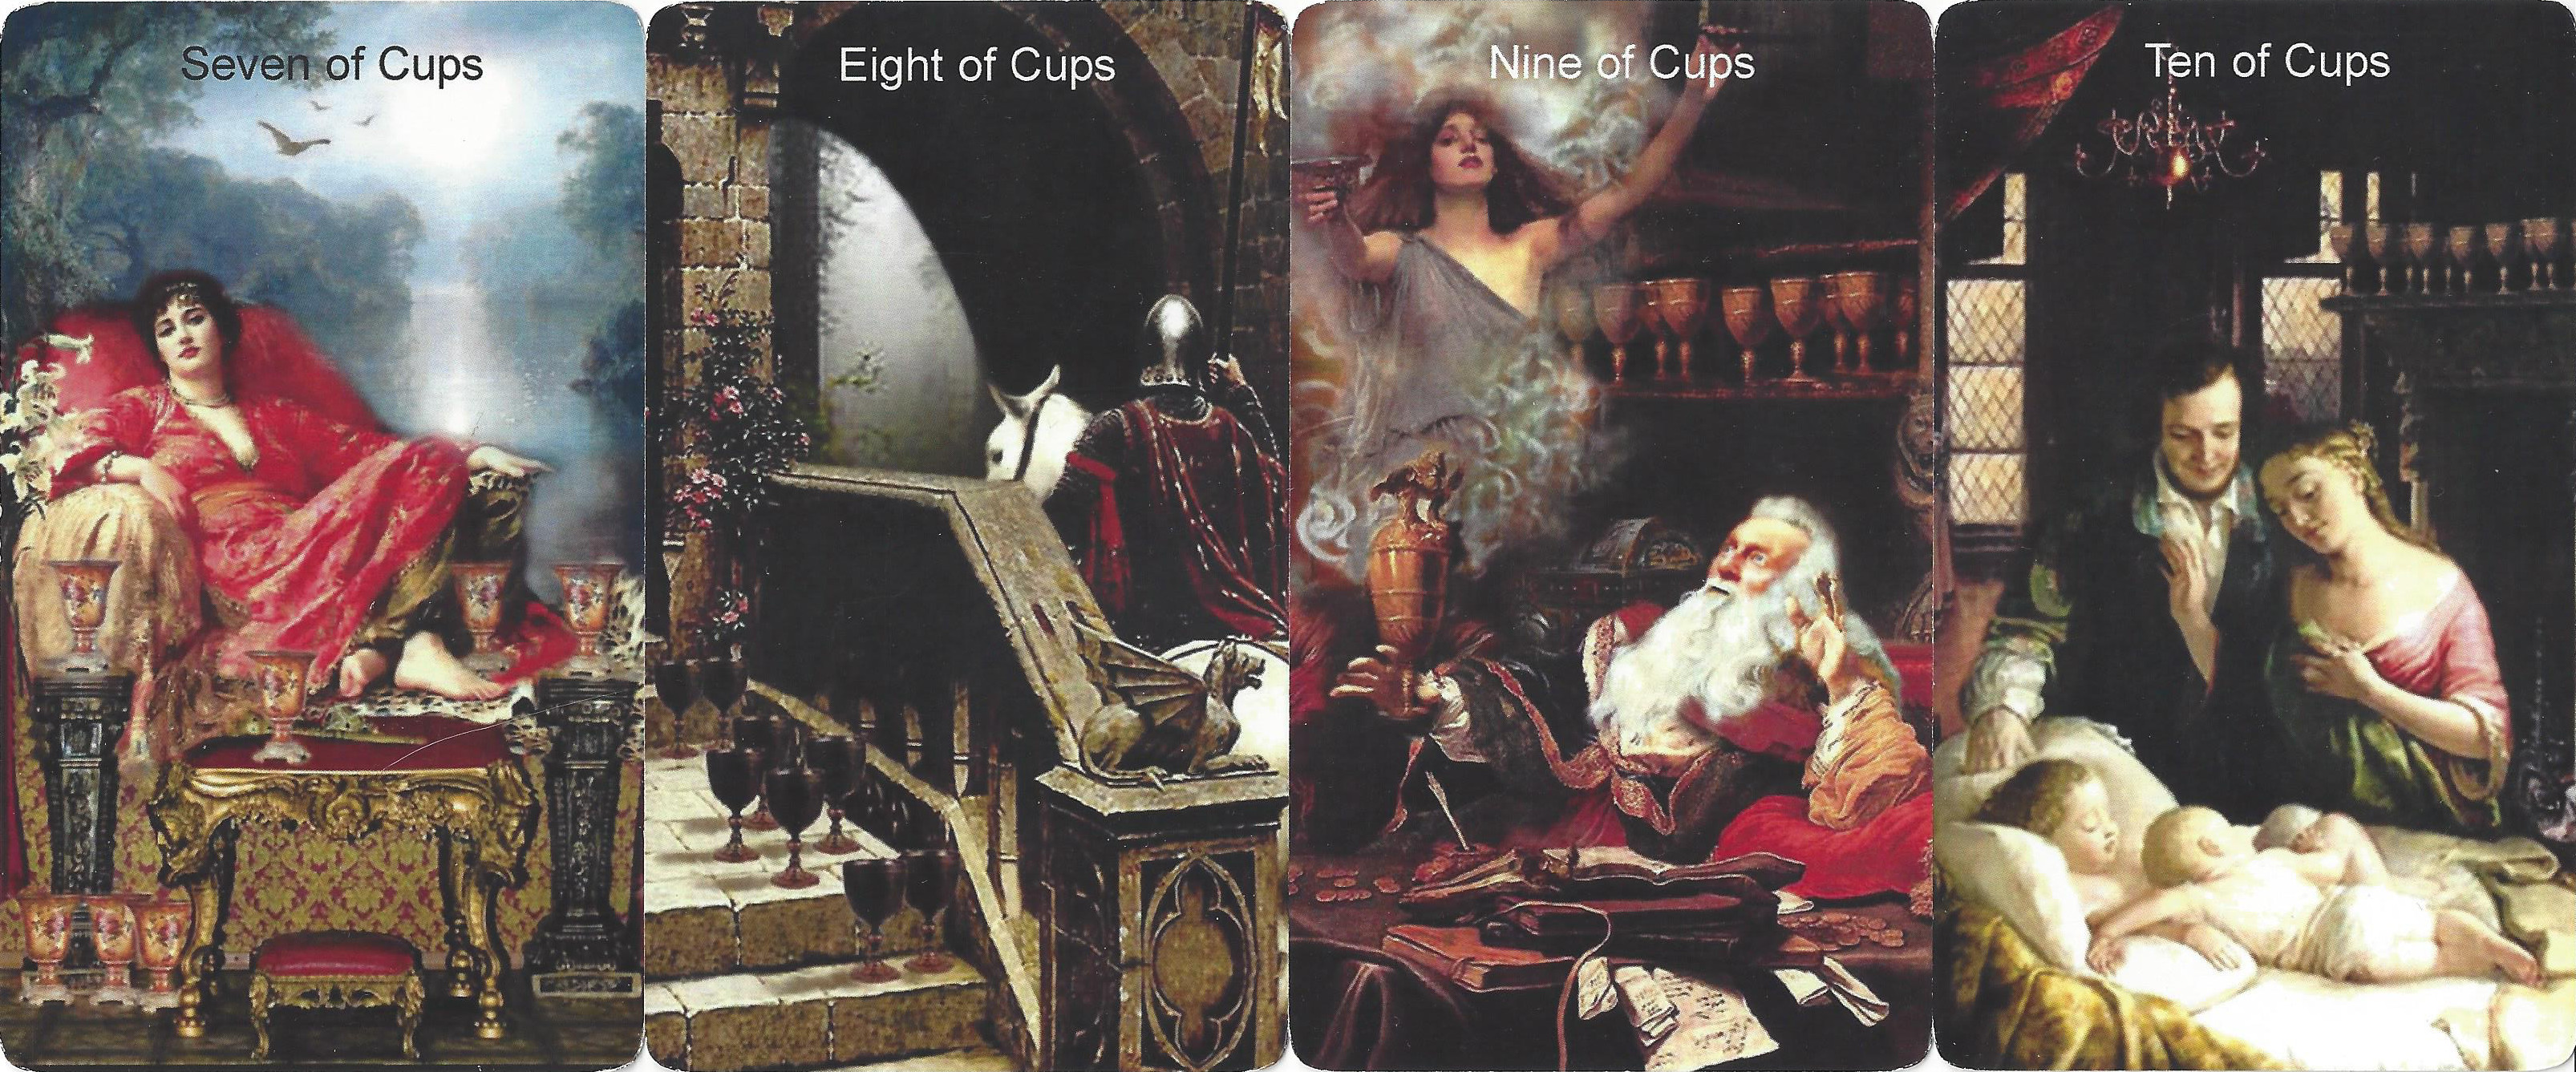 Tarot Suit Of Cups In Love Readings Tarot In Love Learn vocabulary, terms and more with flashcards, games and other study tools. tarot suit of cups in love readings